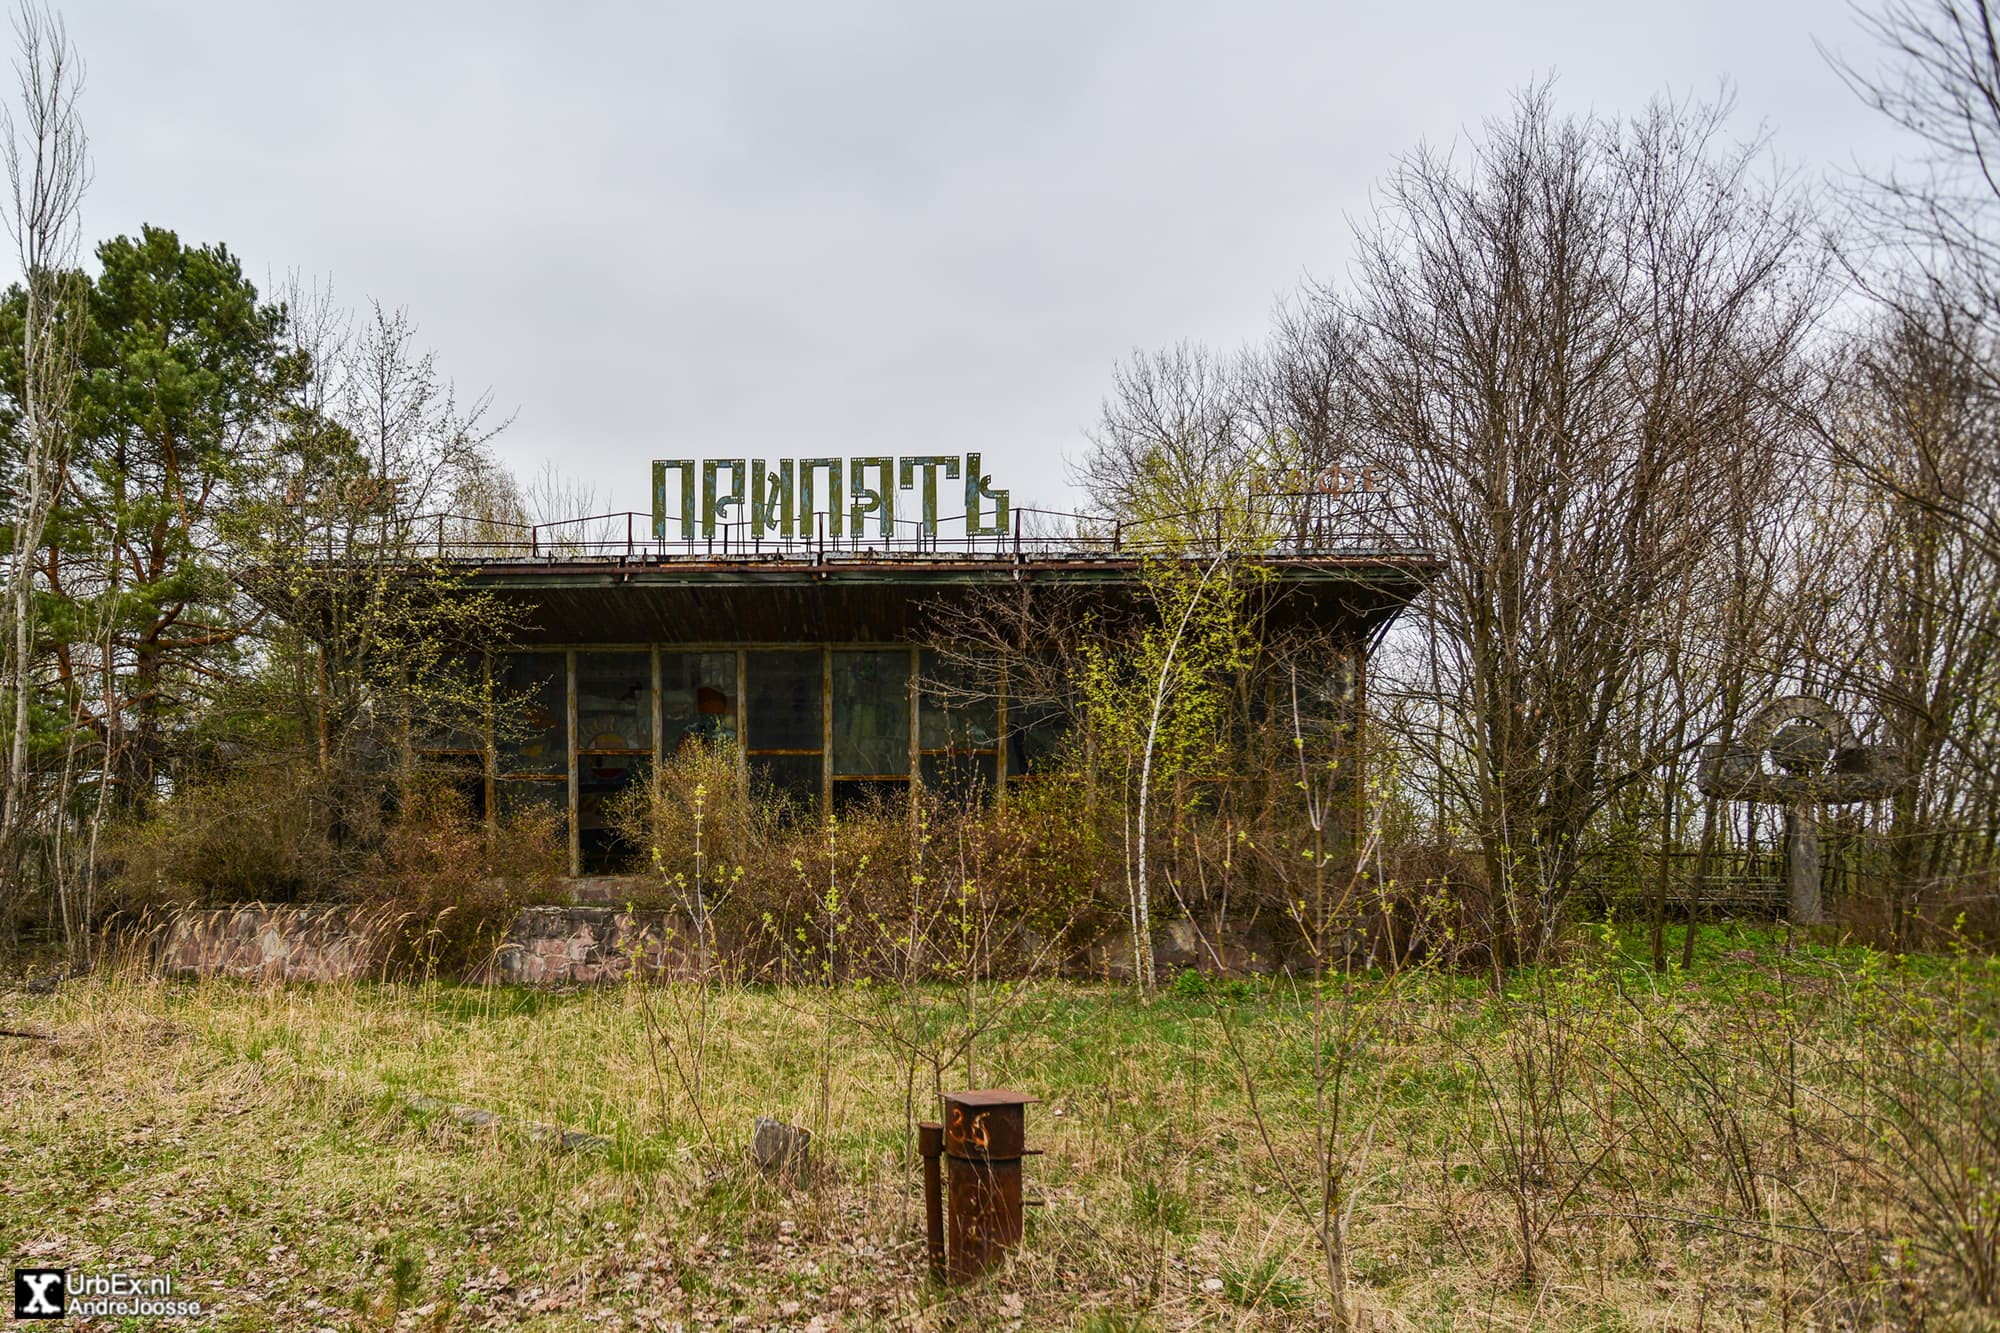 Cafe Pripyat, also called 'The Dish'